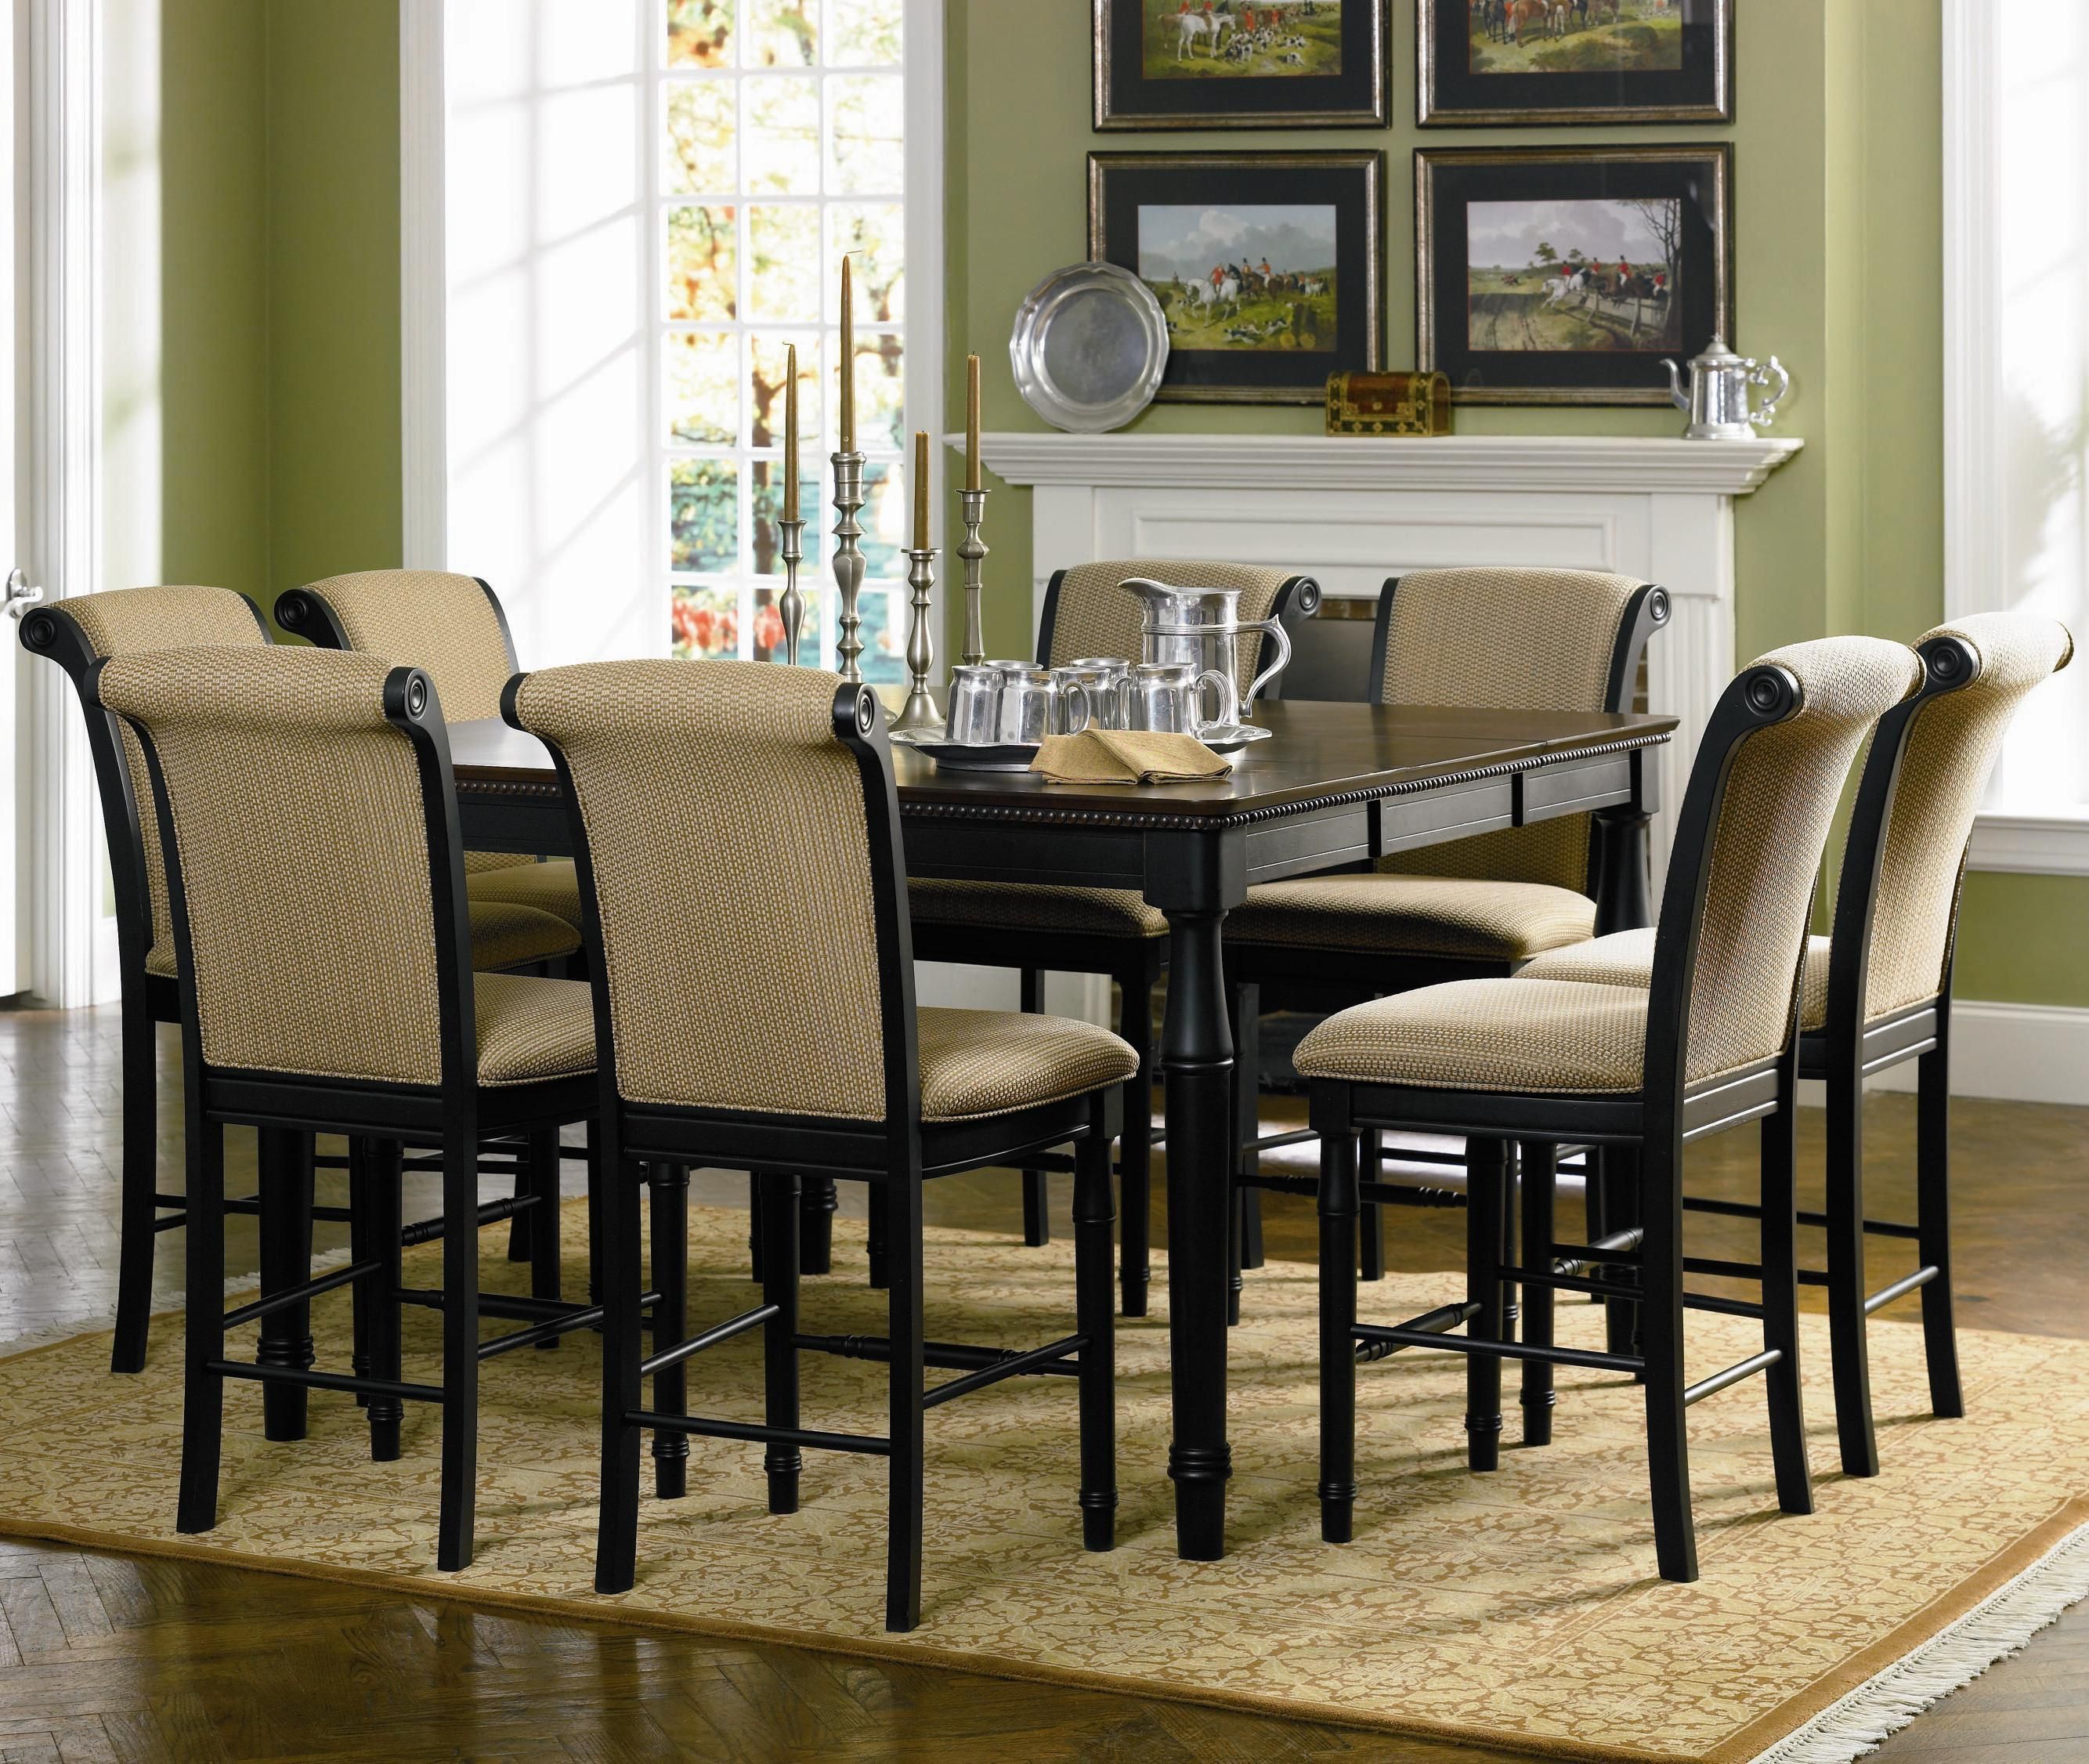 Cabrillo 9 Piece Counter Height Dining Setcoaster  Counter Endearing 8 Pc Dining Room Set Inspiration